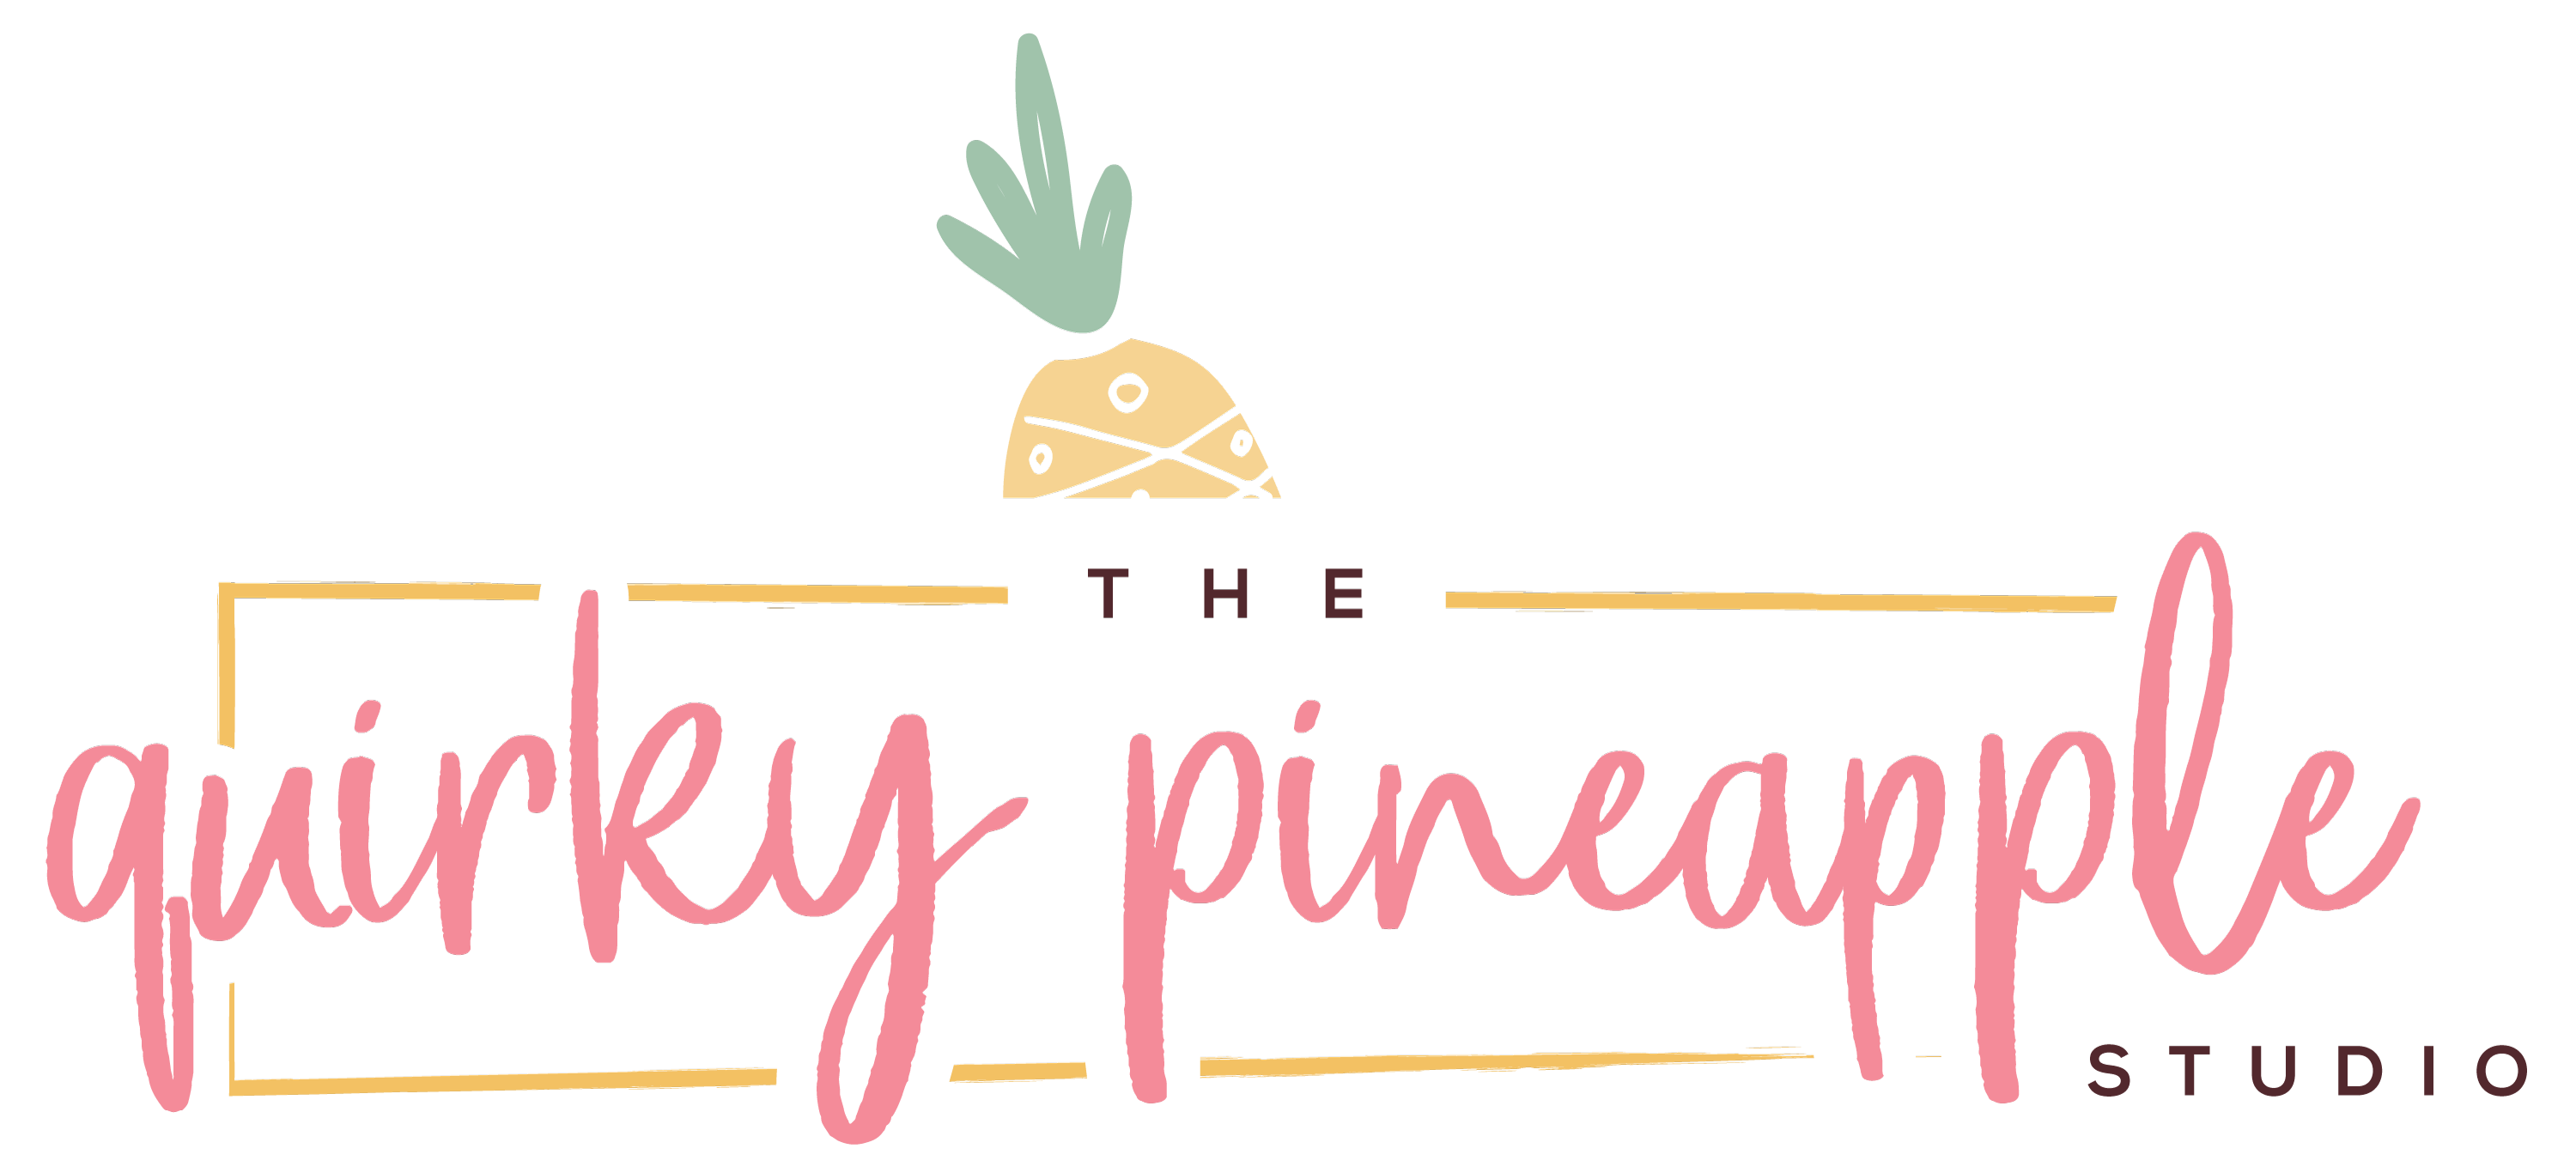 The Quirky Pineapple Studio Shop